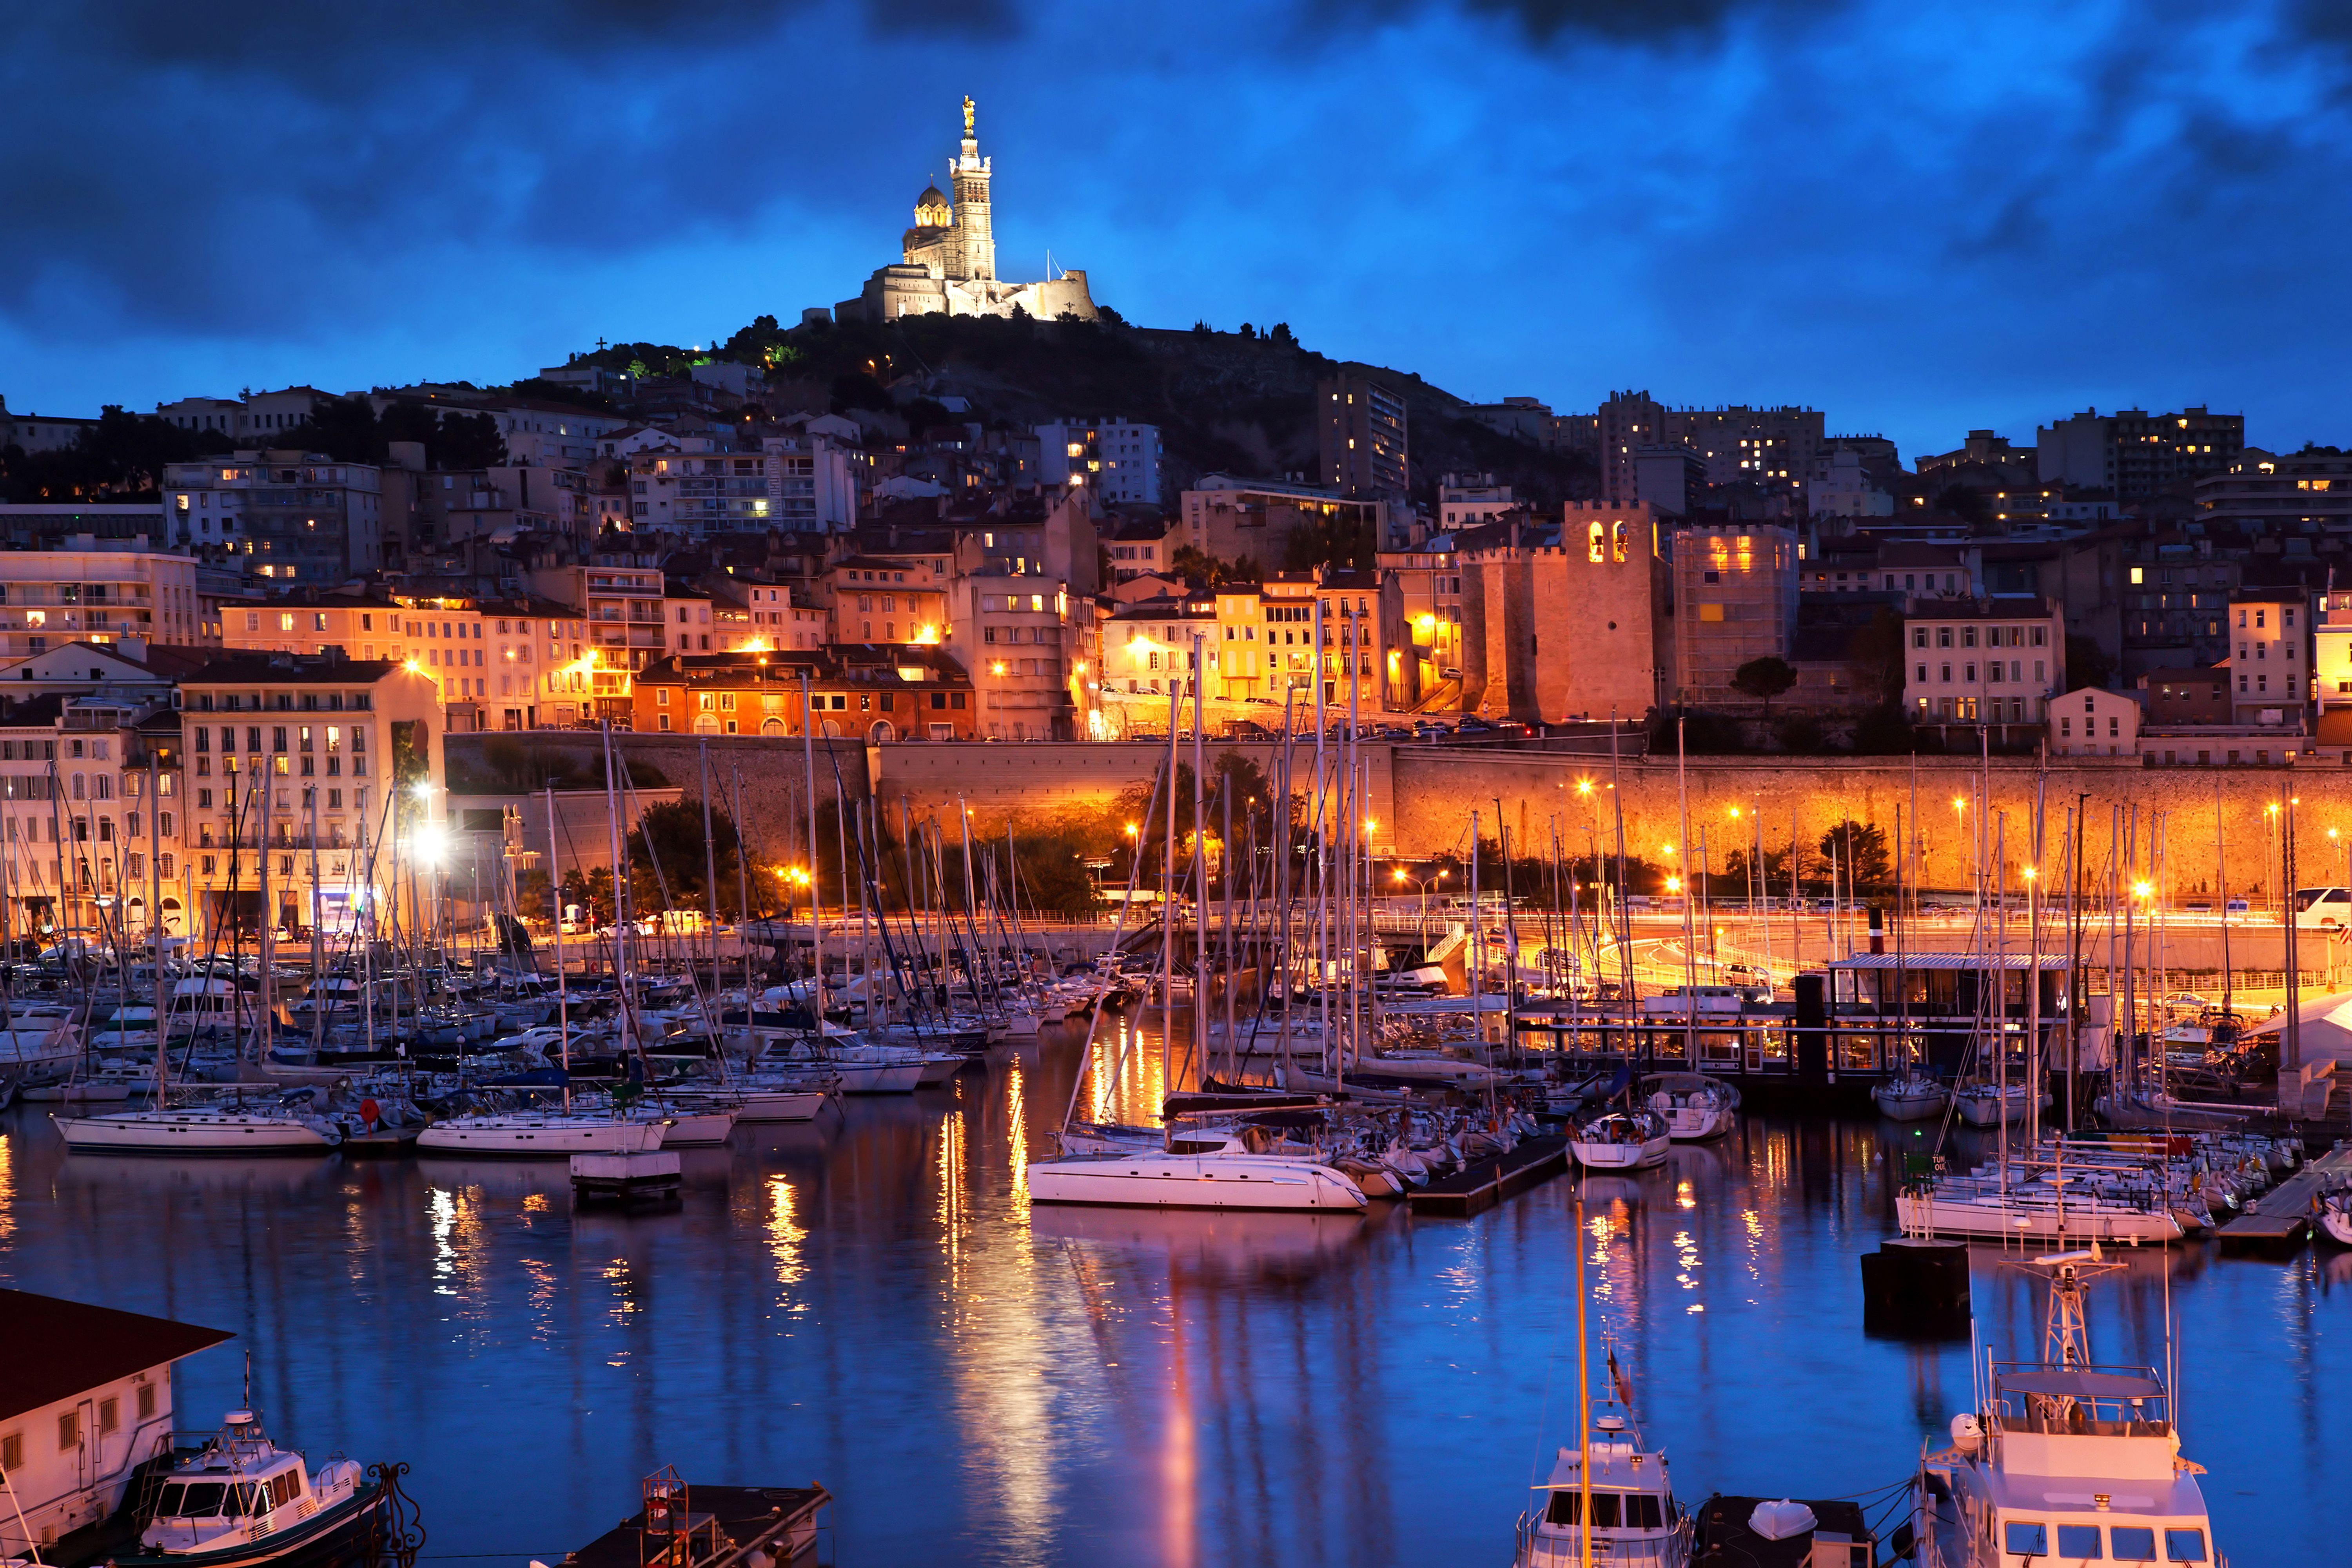 Photos Marseille France Ships Berth Sailing night time 6000x4001